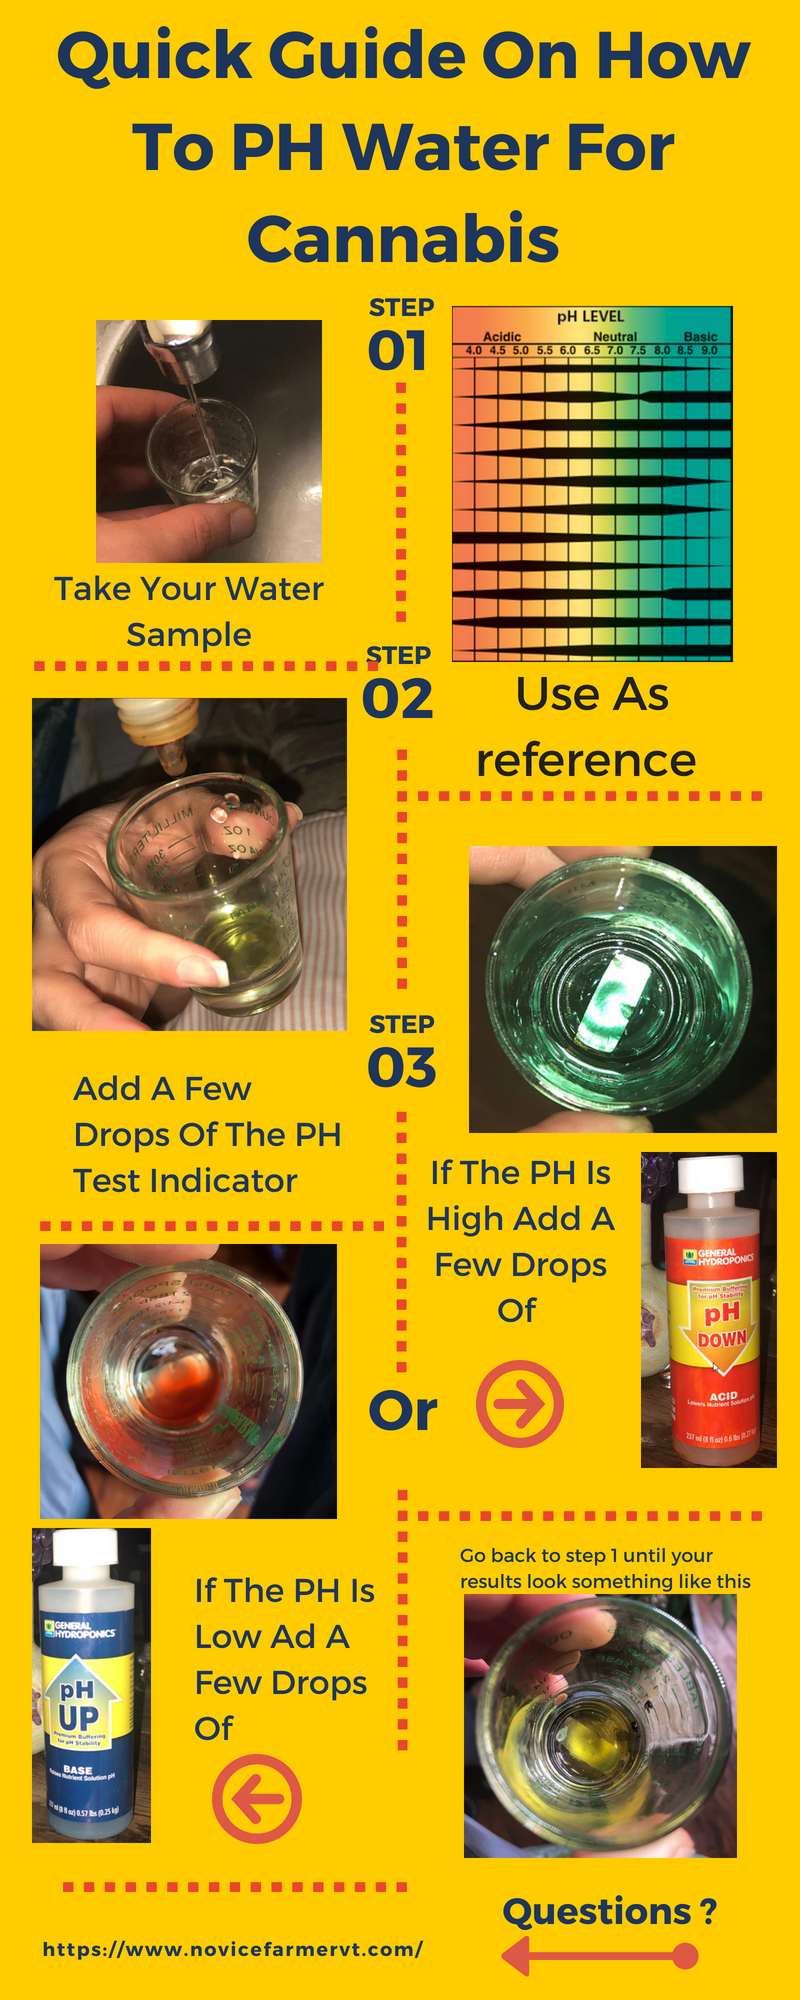 Quick Guide On How To PH Water For Cannabis,how do i balance water for cannabis , do i have to balance ph for weed, how do i test my water for cannabis